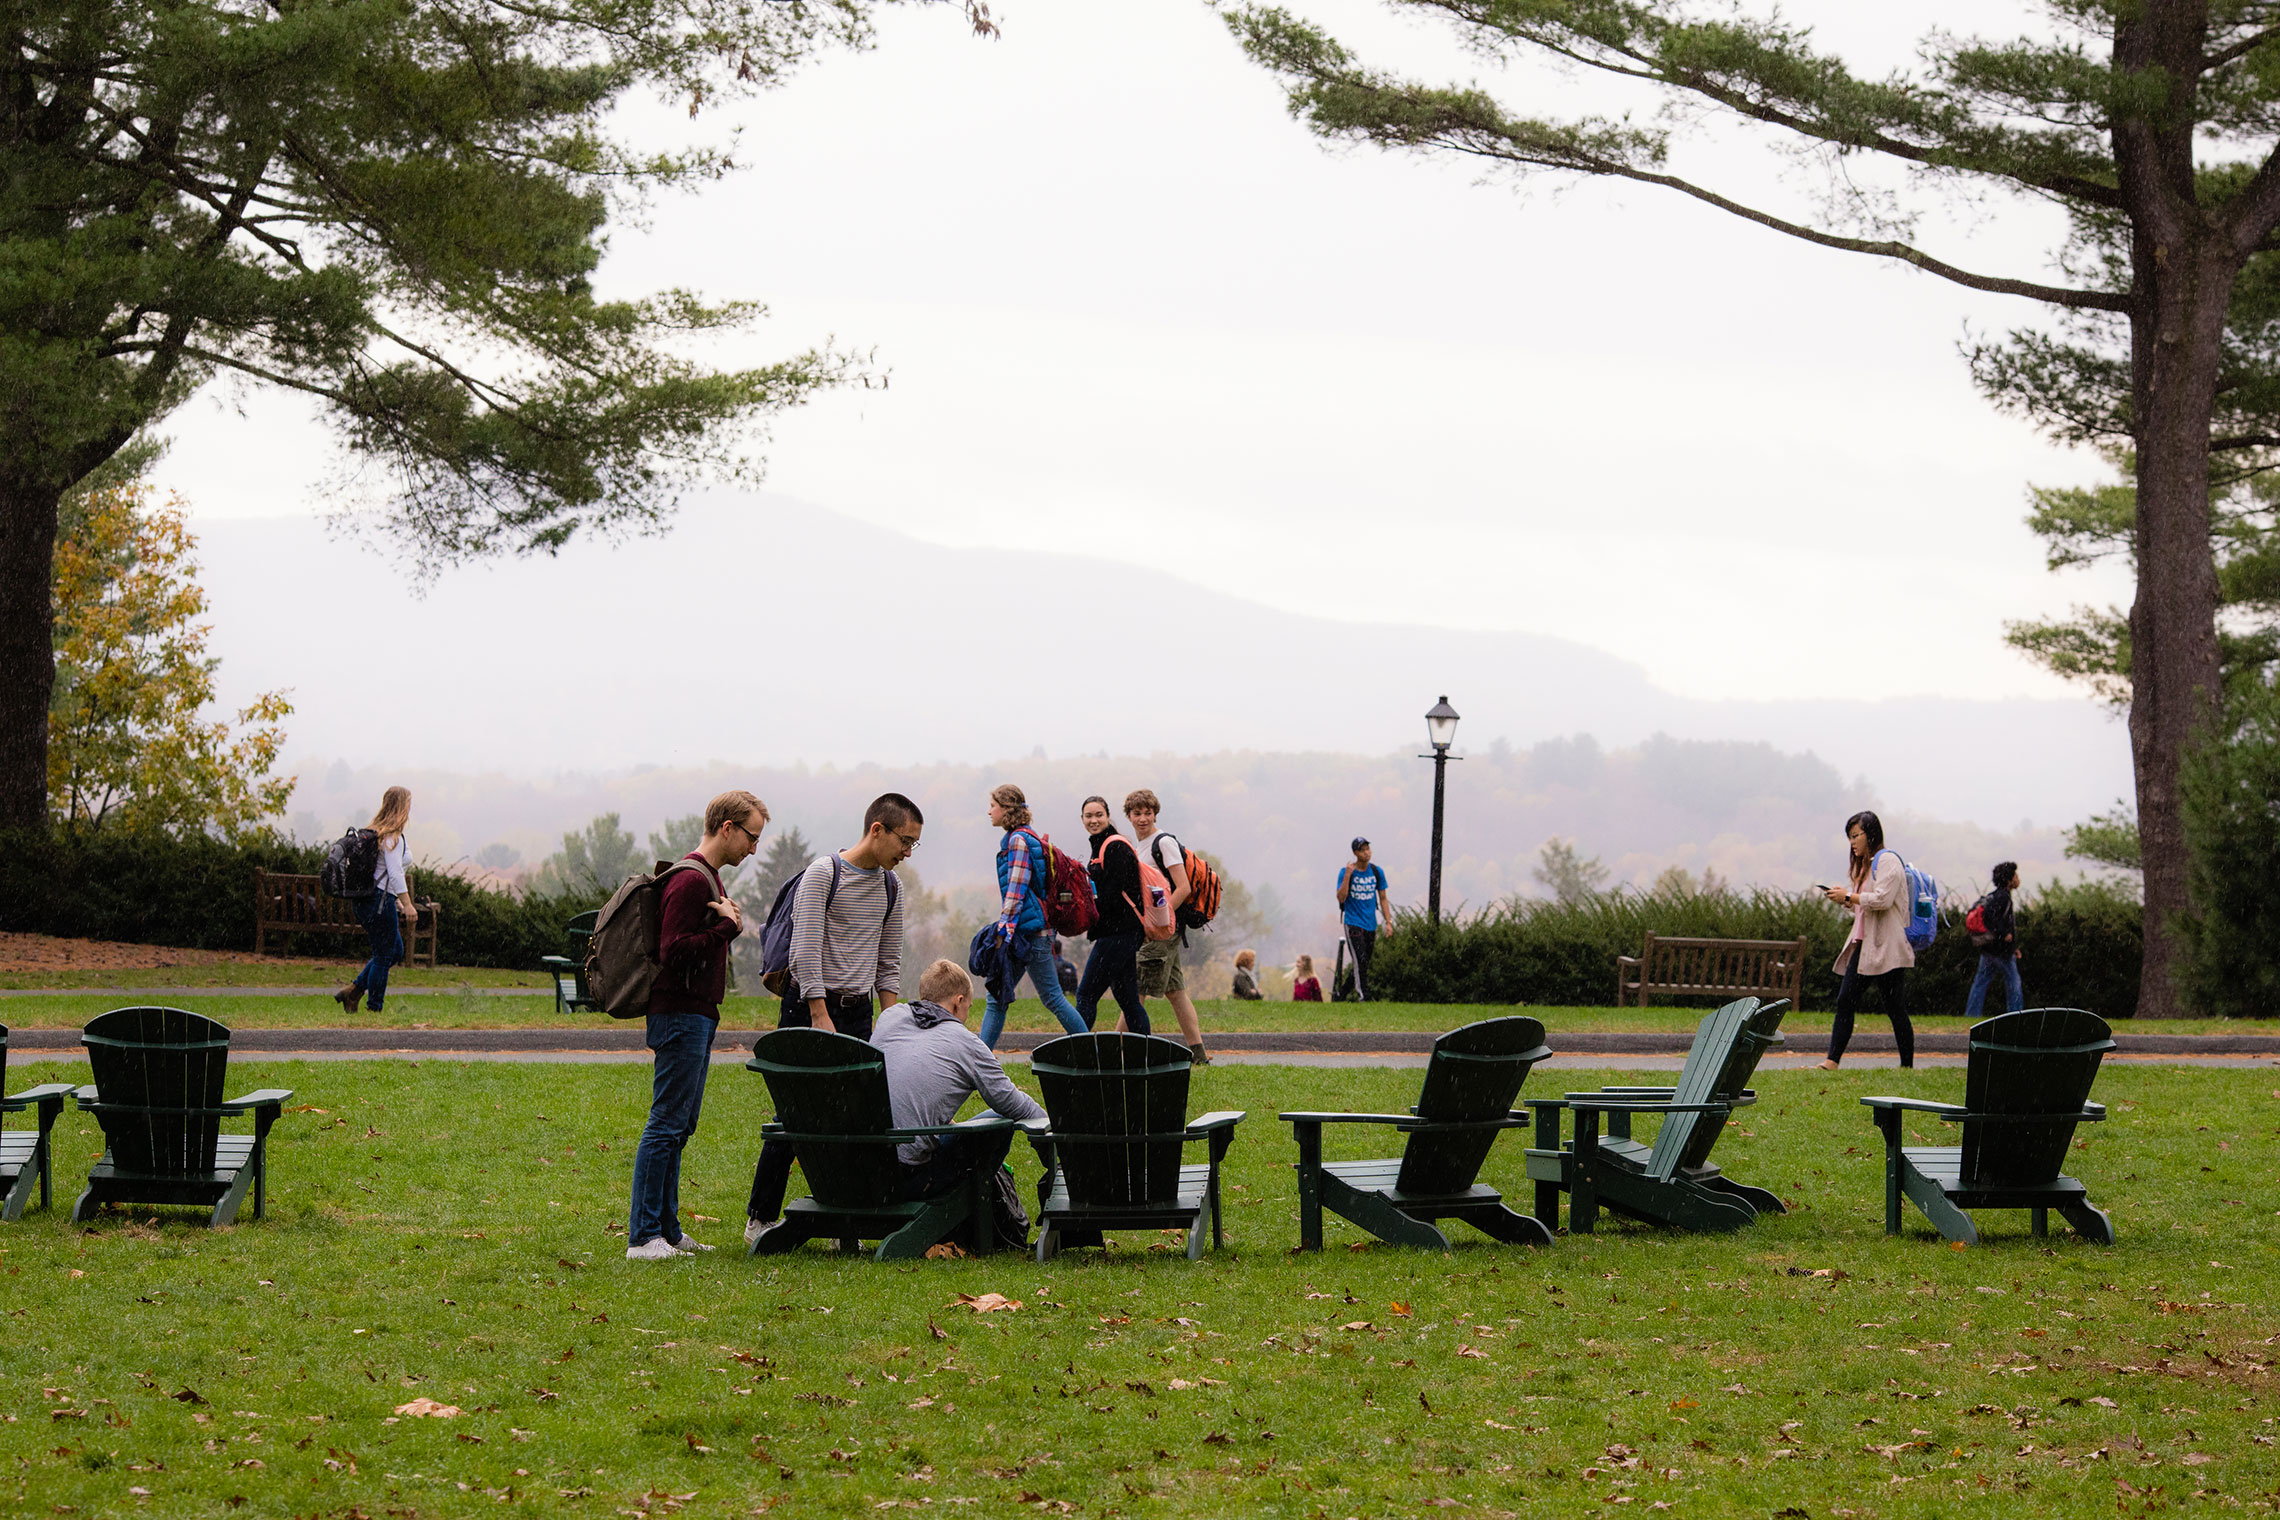 Students on the Academic Quad at Amherst College.